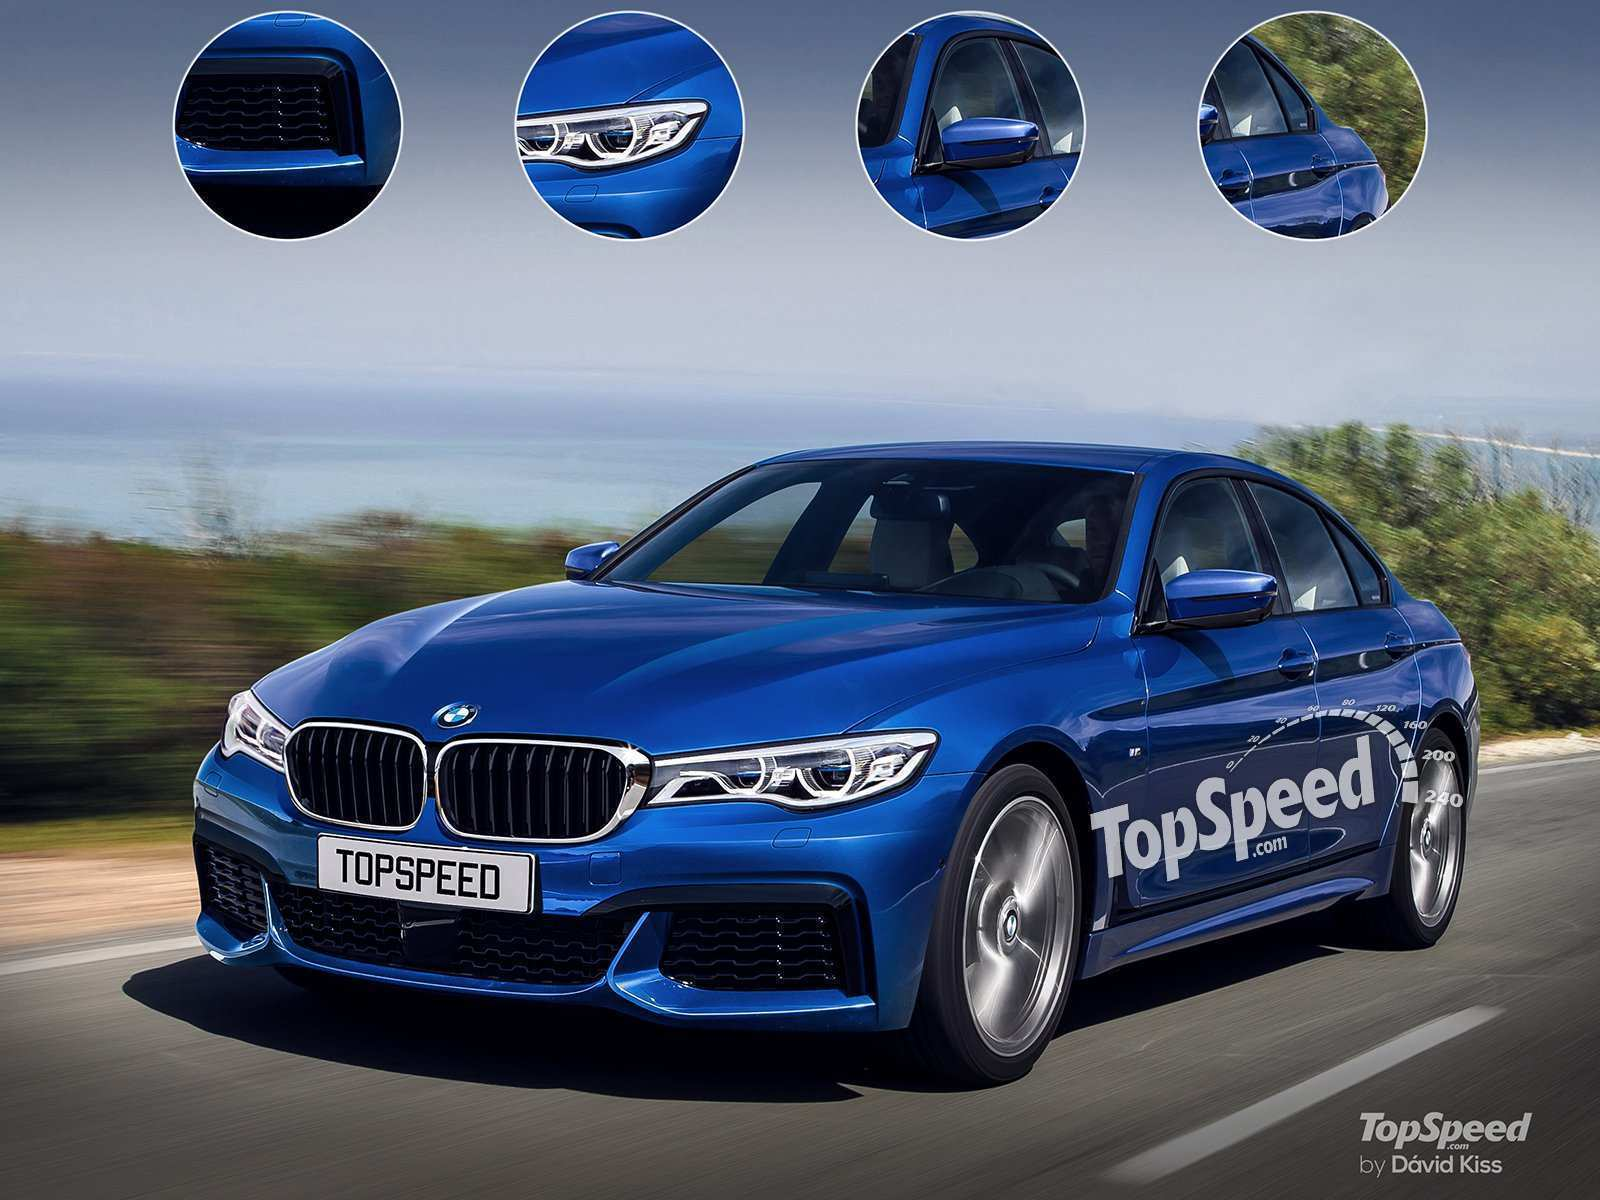 82 All New 2019 Bmw 240 Specs and Review with 2019 Bmw 240